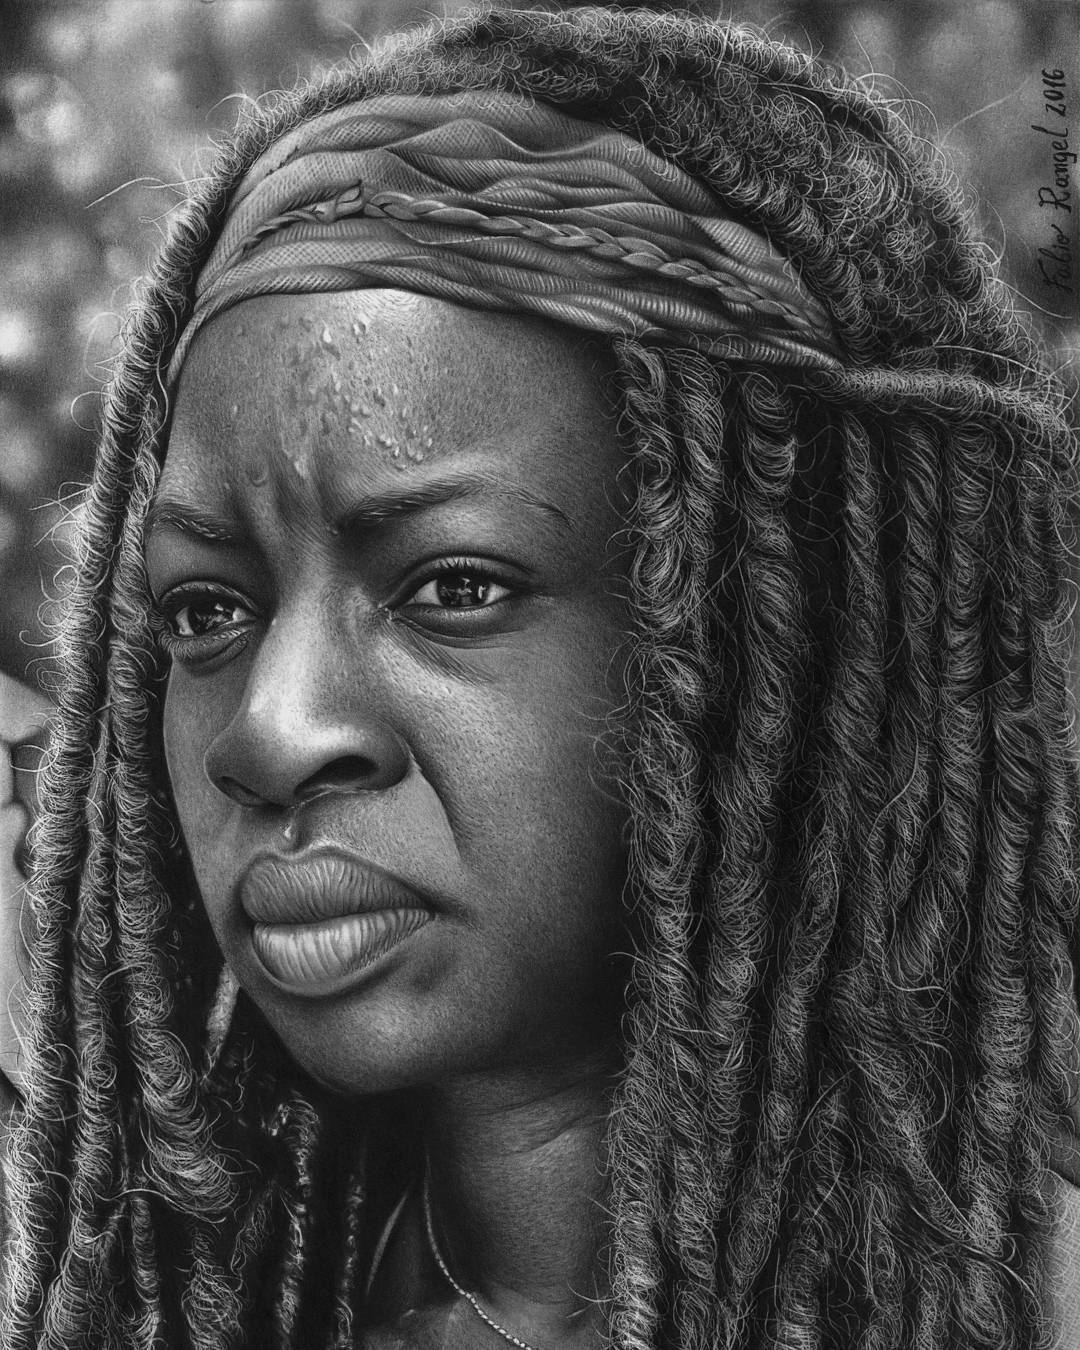 03-Michonne-The-Walkin-Dead-Fabio-Rangel-Drawings-of-Protagonists-from-TV-and-Movies-www-designstack-co